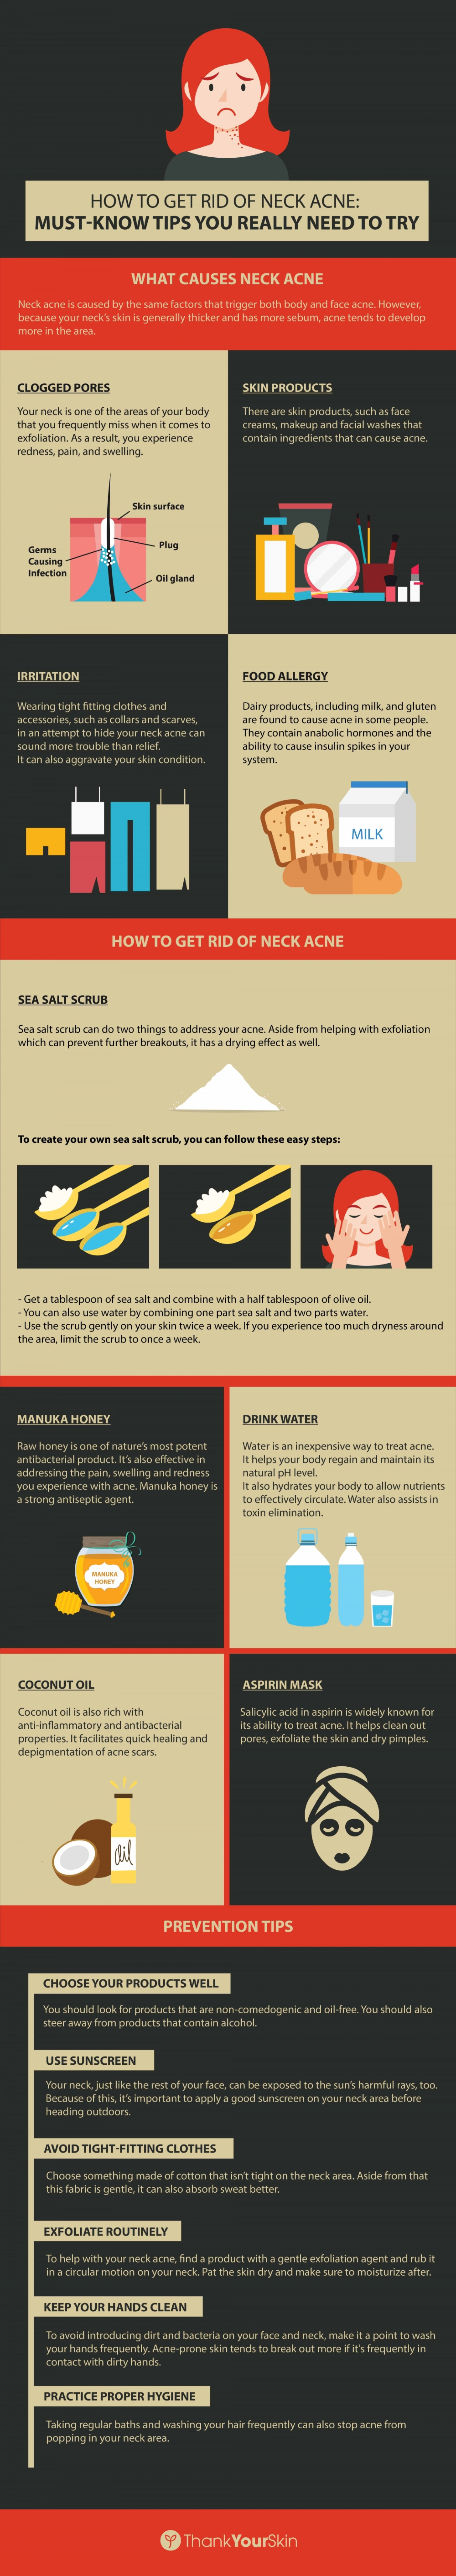 How to Get Rid of Neck Acne: Must-Know Tips You Really Need to Try Infographic